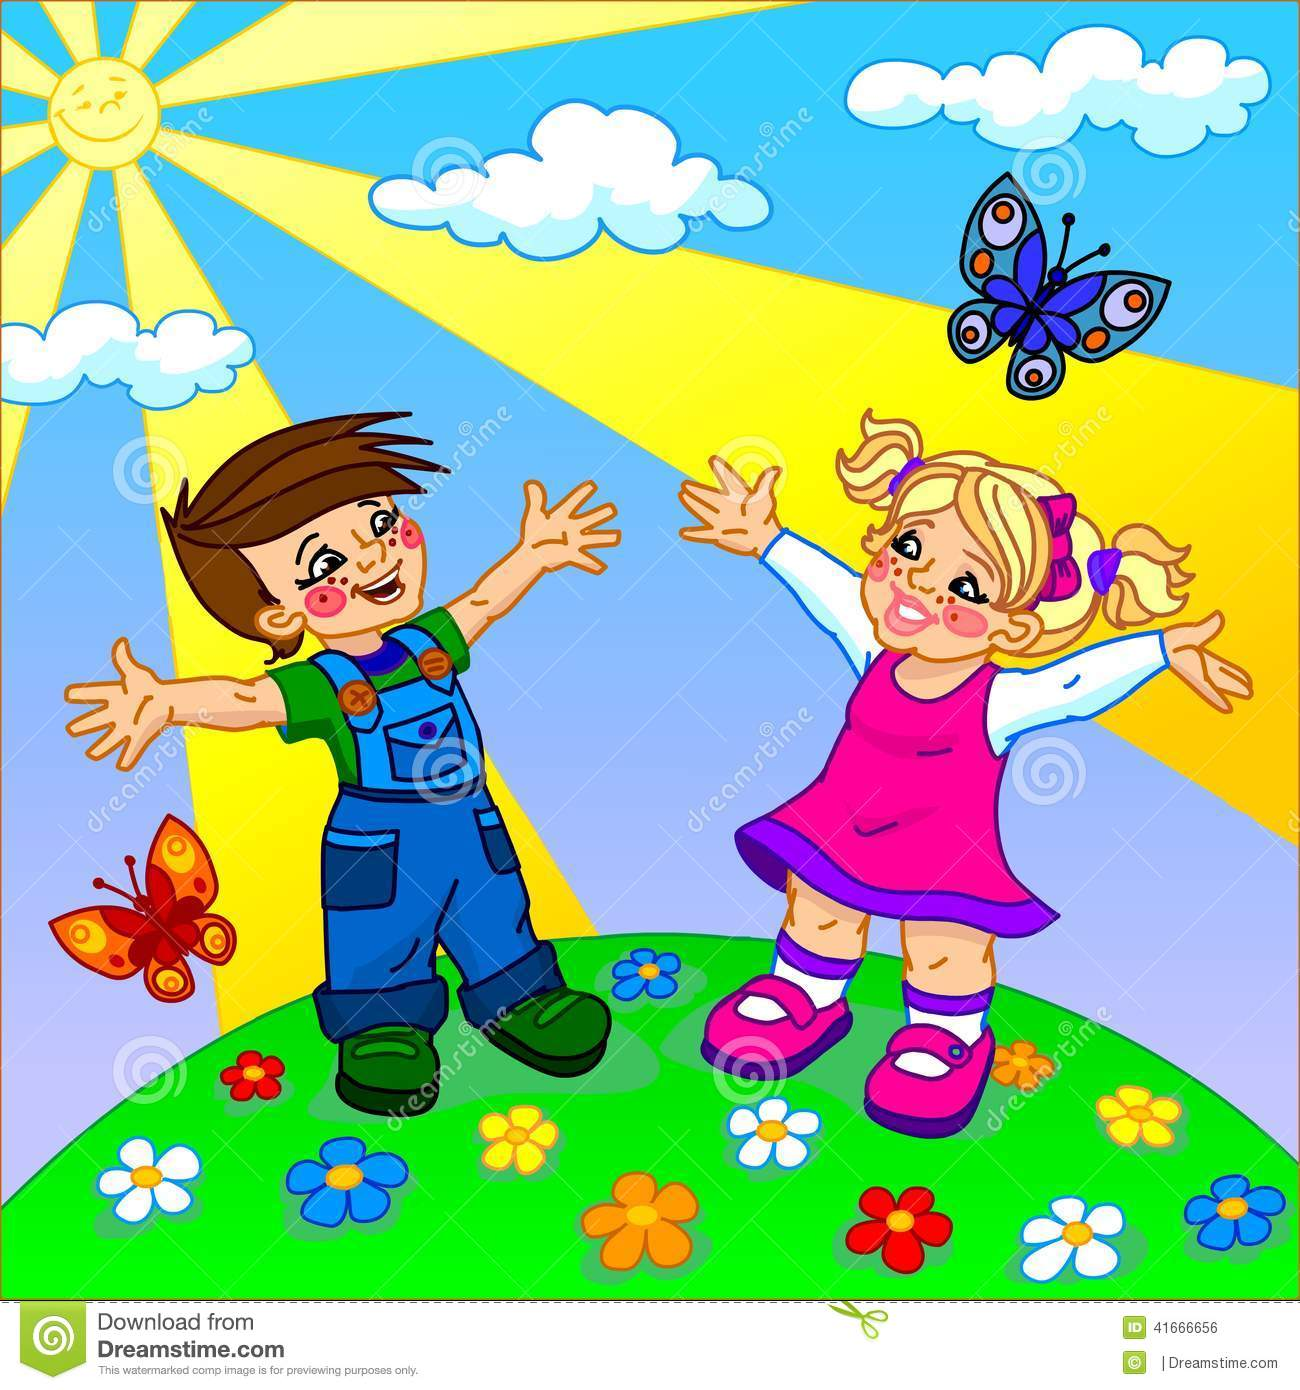 the illustration of happy cartoon kids stock illustration - Weather Pics For Kids